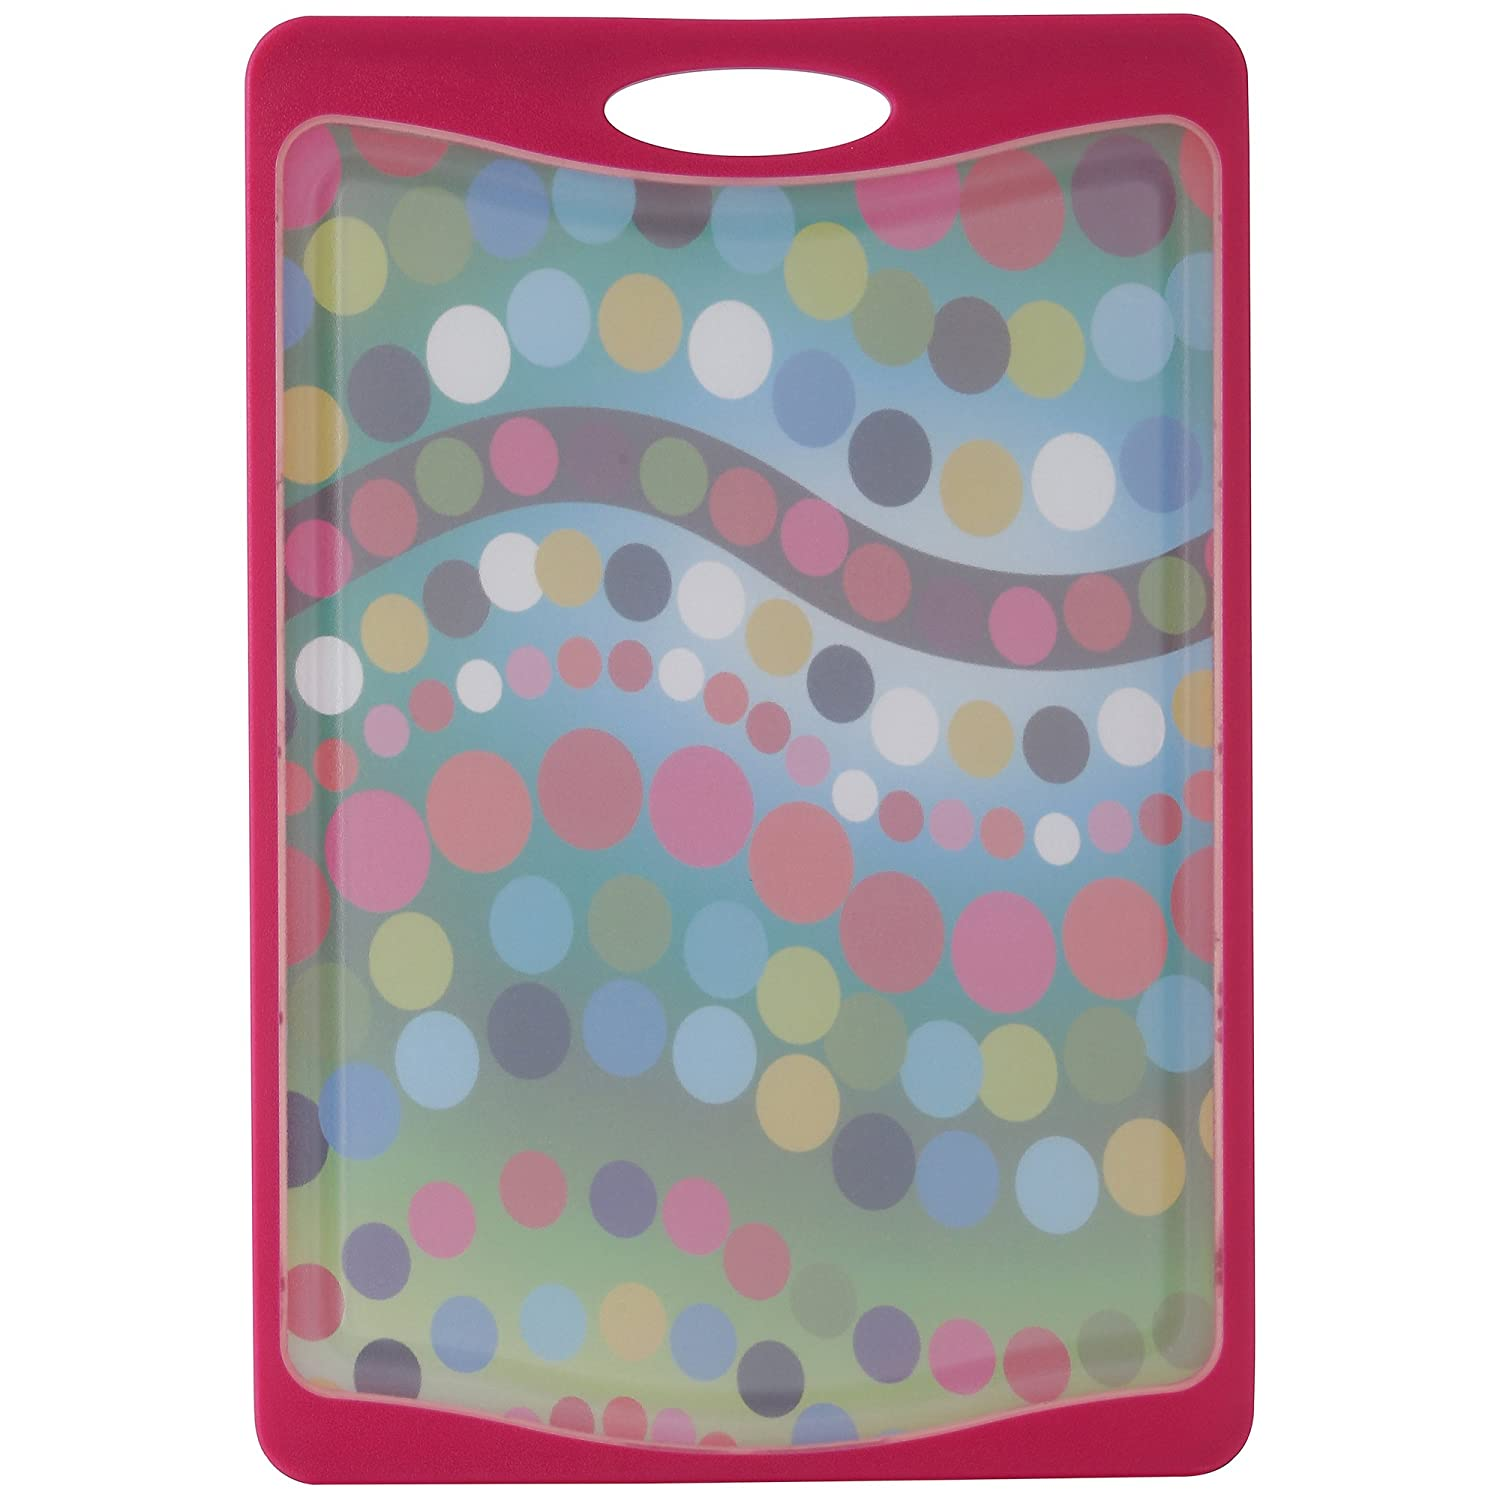 "French Bull 17"" Antimicrobial Cutting Board - Plastic, Non Slip, Knife Friendly, Dishwasher Safe - Bindi"